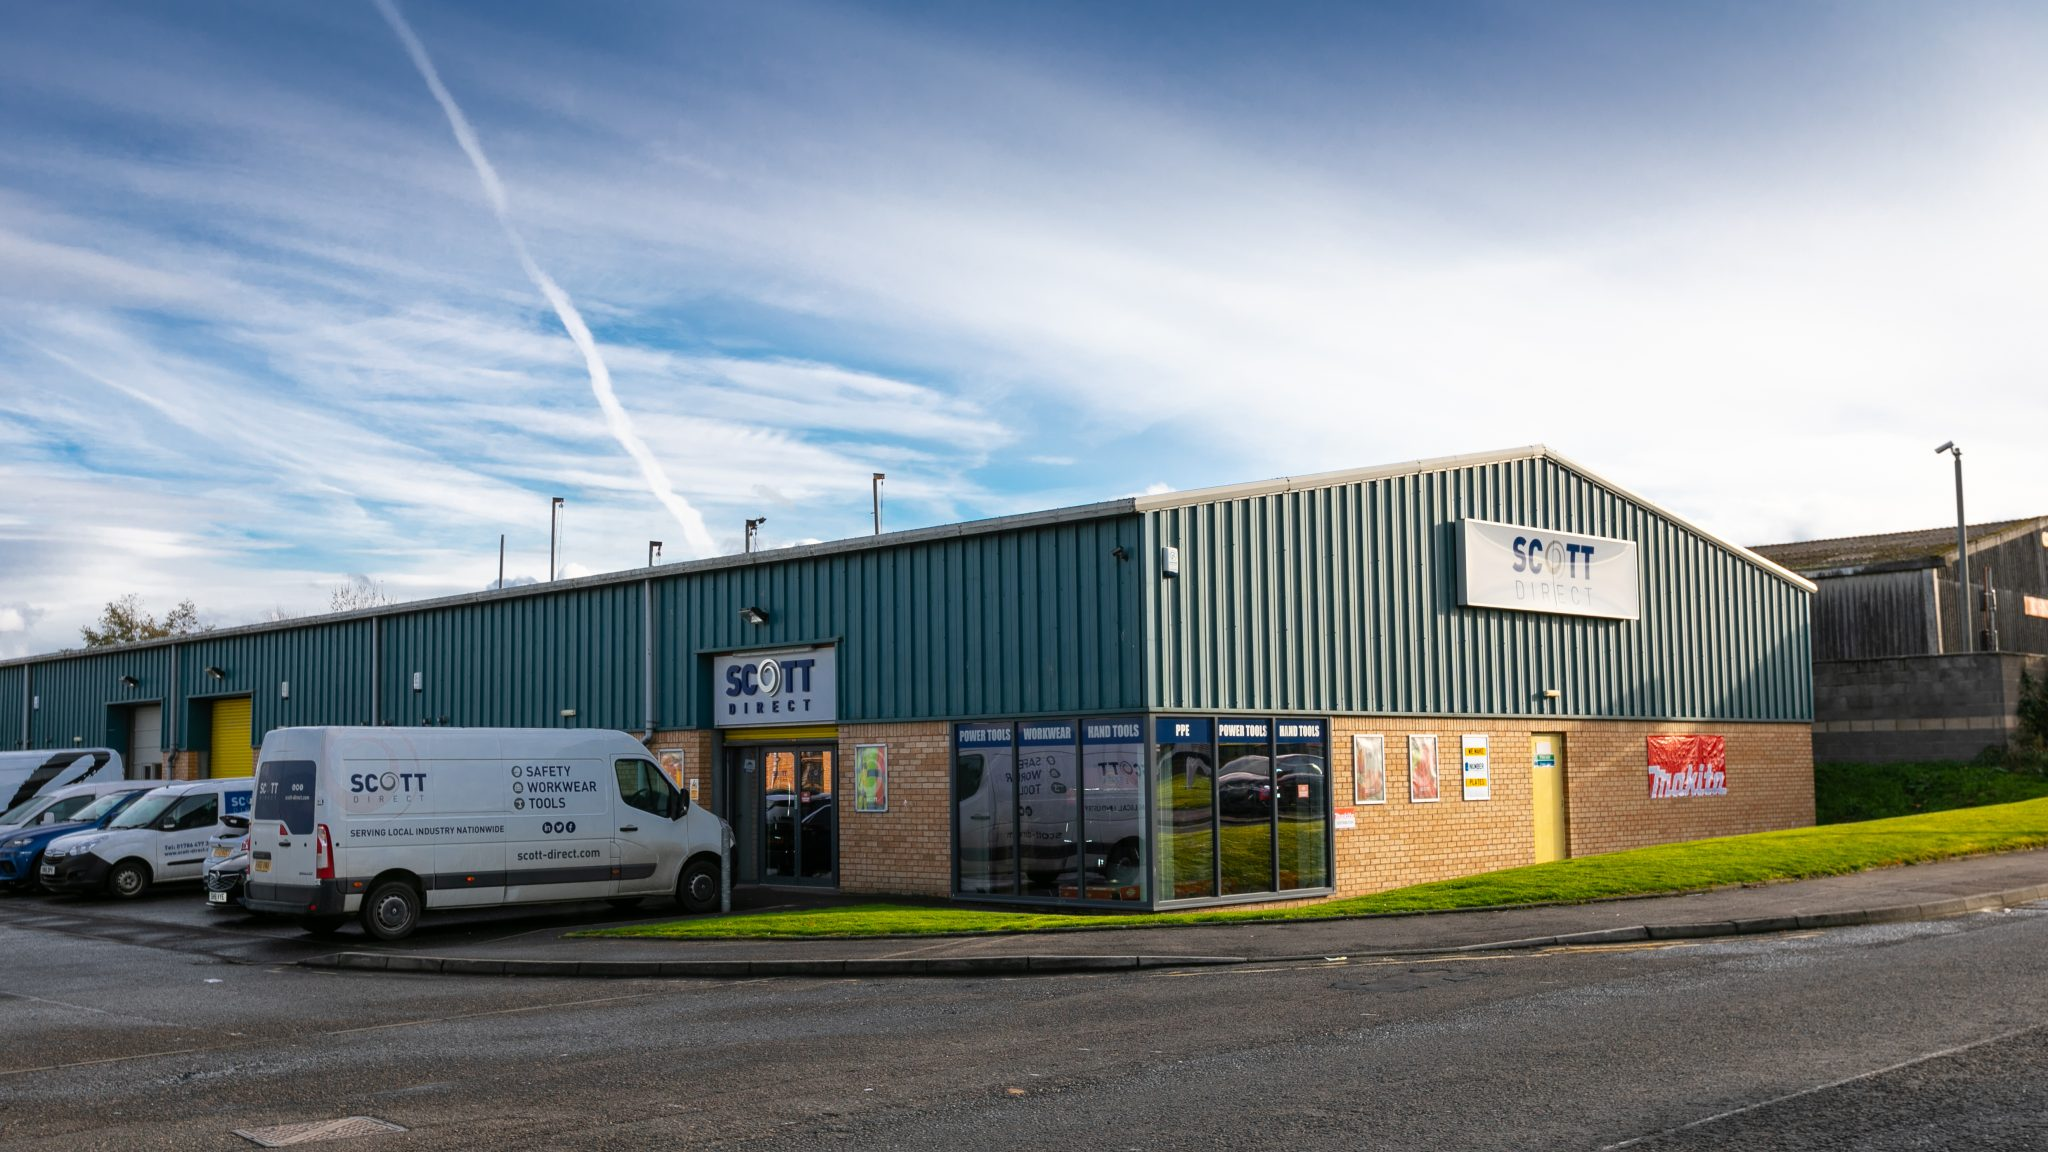 Scott Direct secures ISO 14001